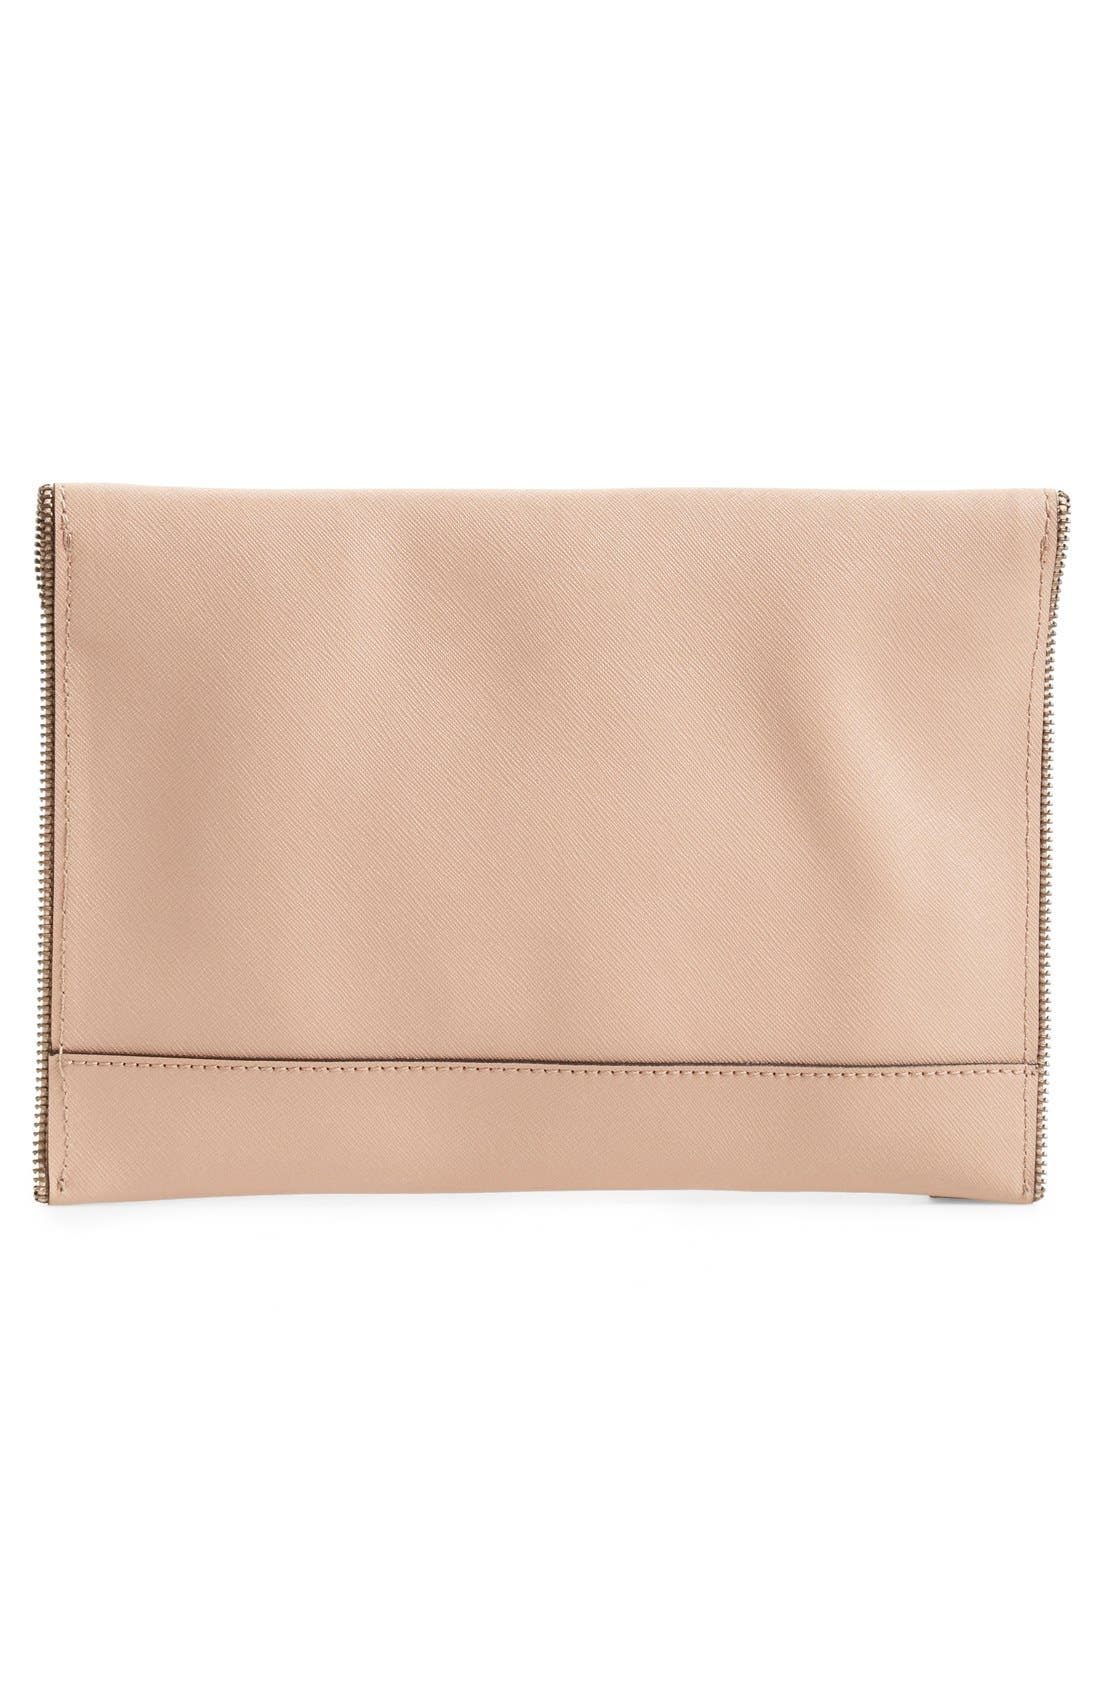 ,                             Leo Envelope Clutch,                             Alternate thumbnail 136, color,                             251